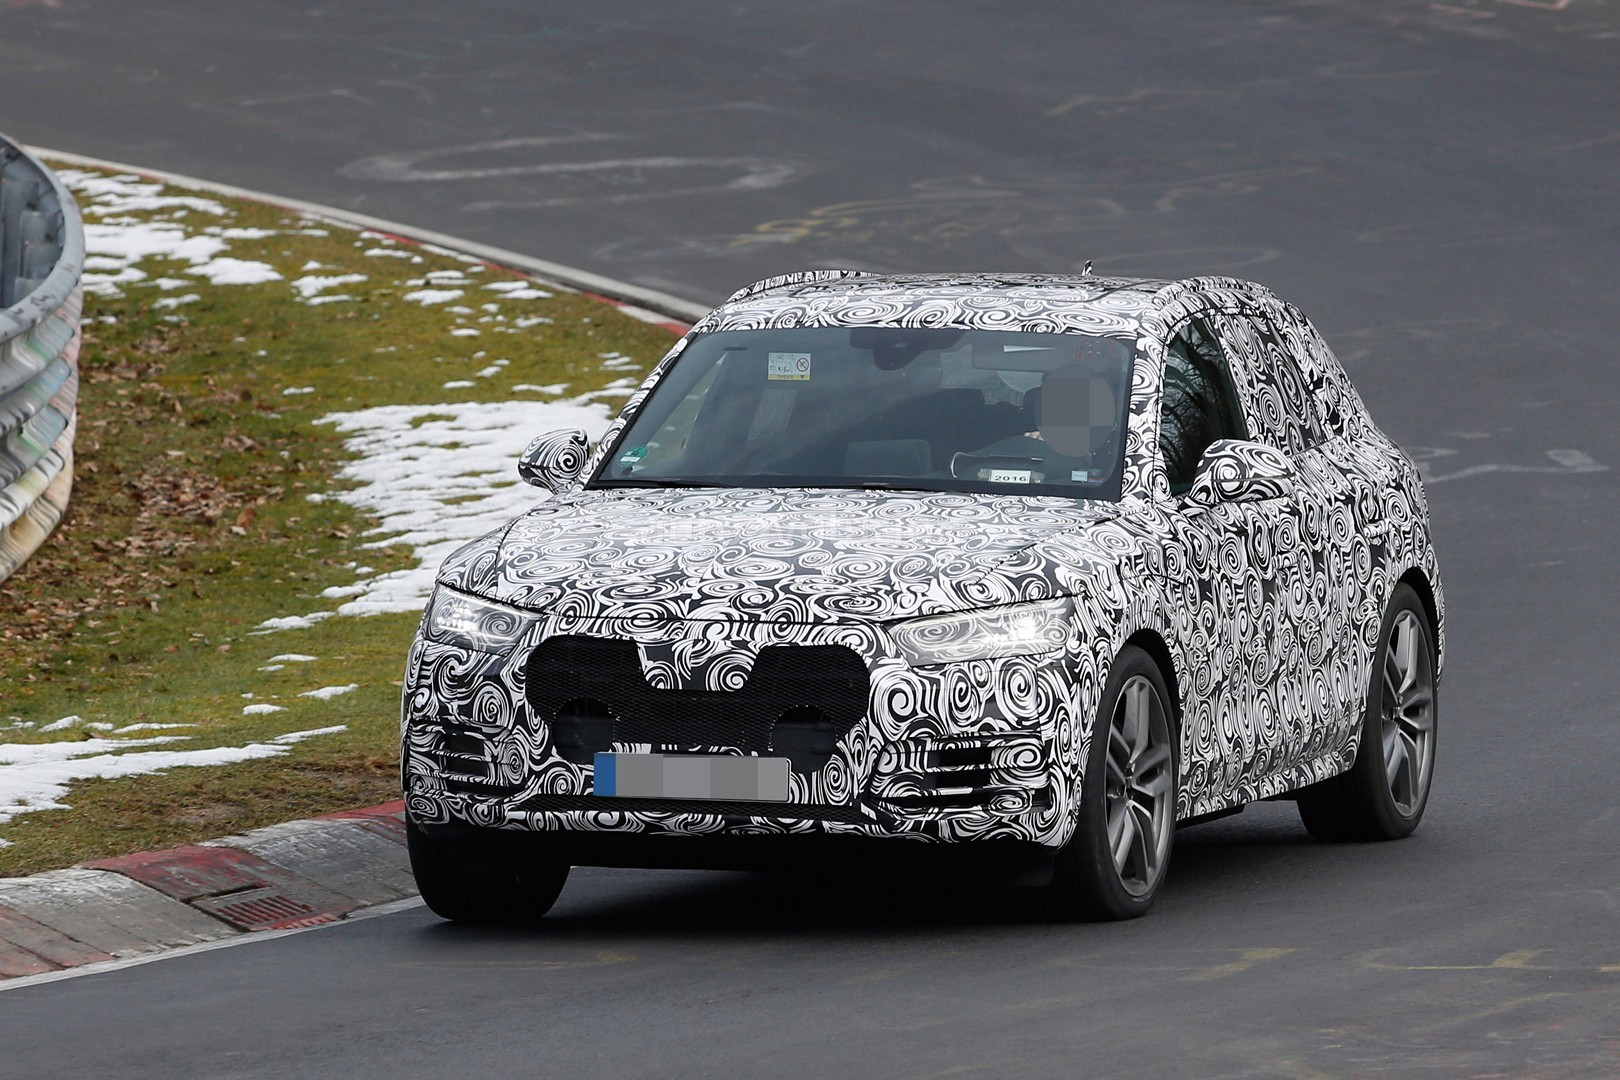 2017 Audi Q5 Shows LED Headlights and Dual Exhaust During Nurburgring Testing - autoevolution